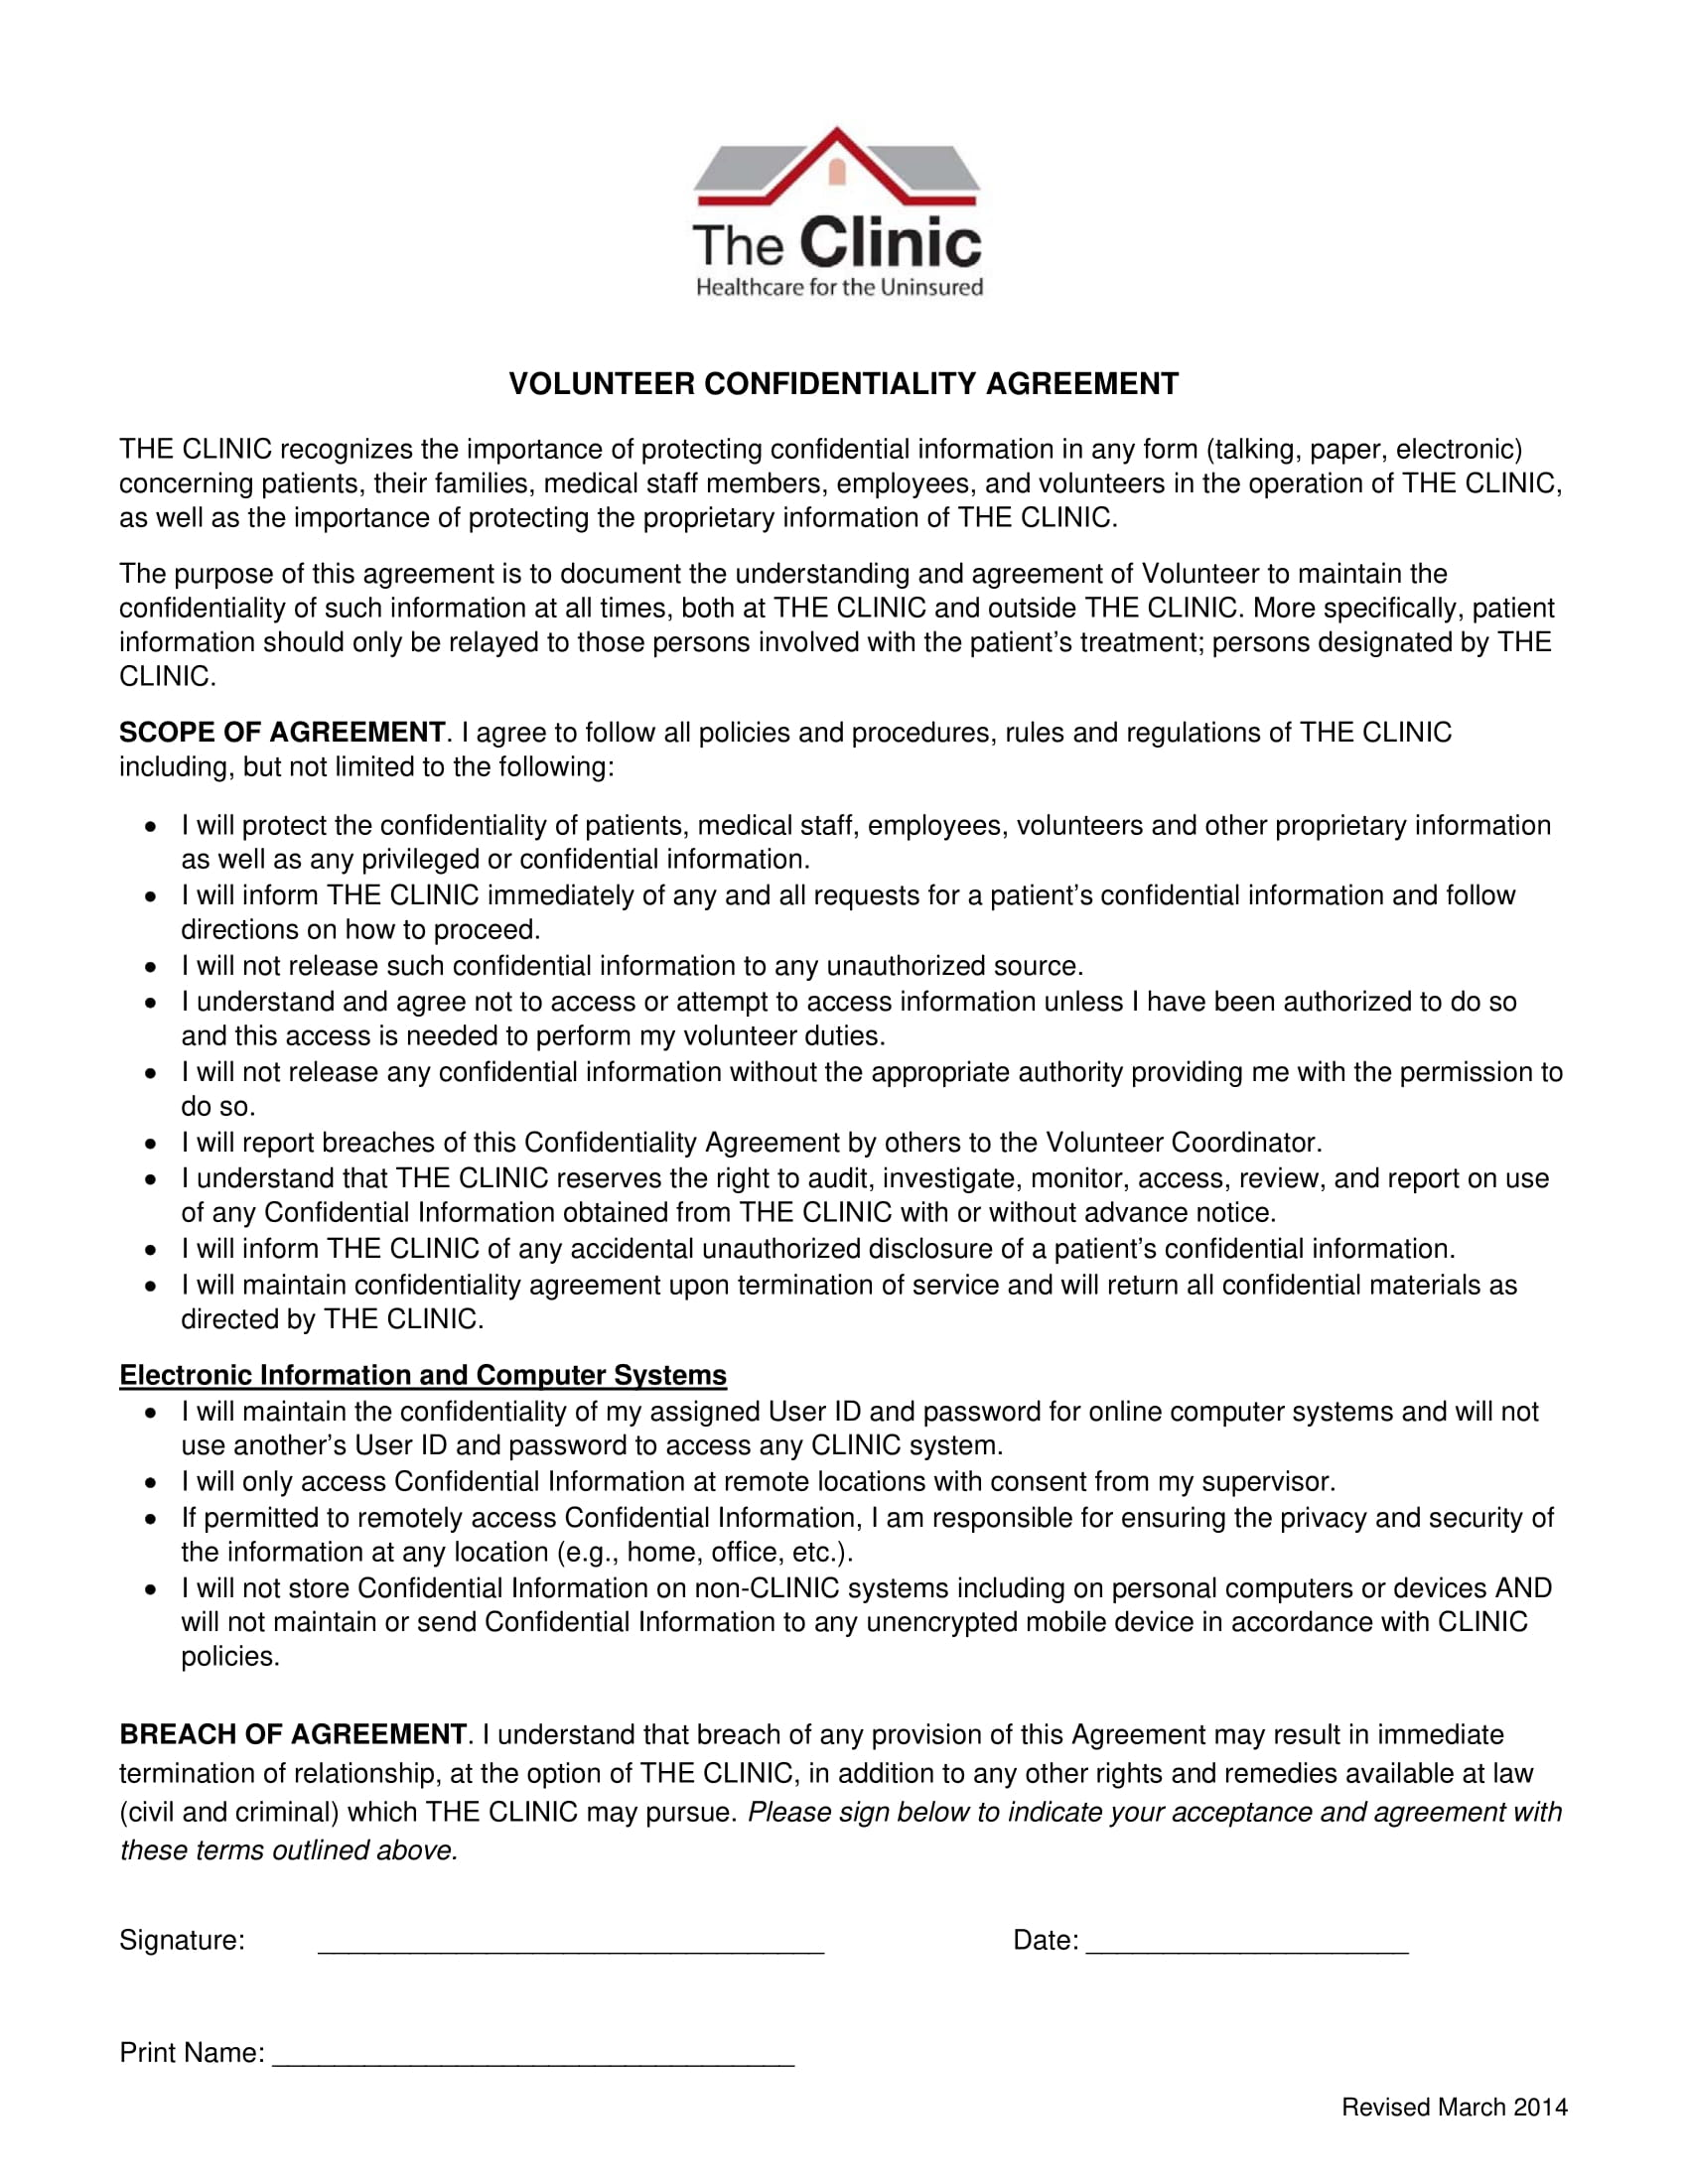 clinic volunteer confidentiality agreement example